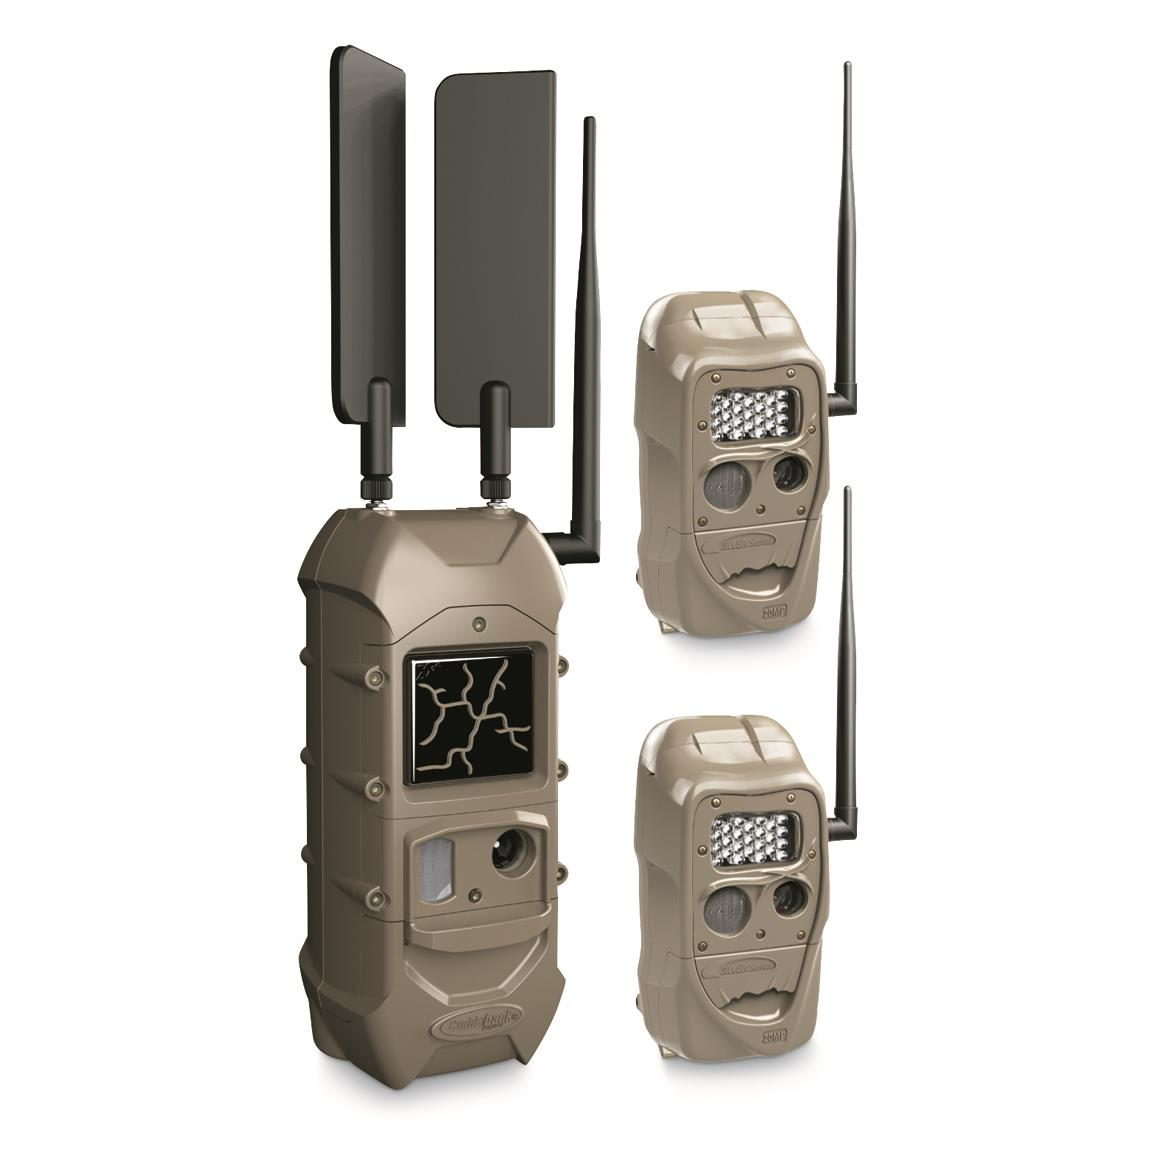 CuddeLink Long Range IR Trail/Game Camera Plus FREE Dual Cell Trail Camera, 2 Pack